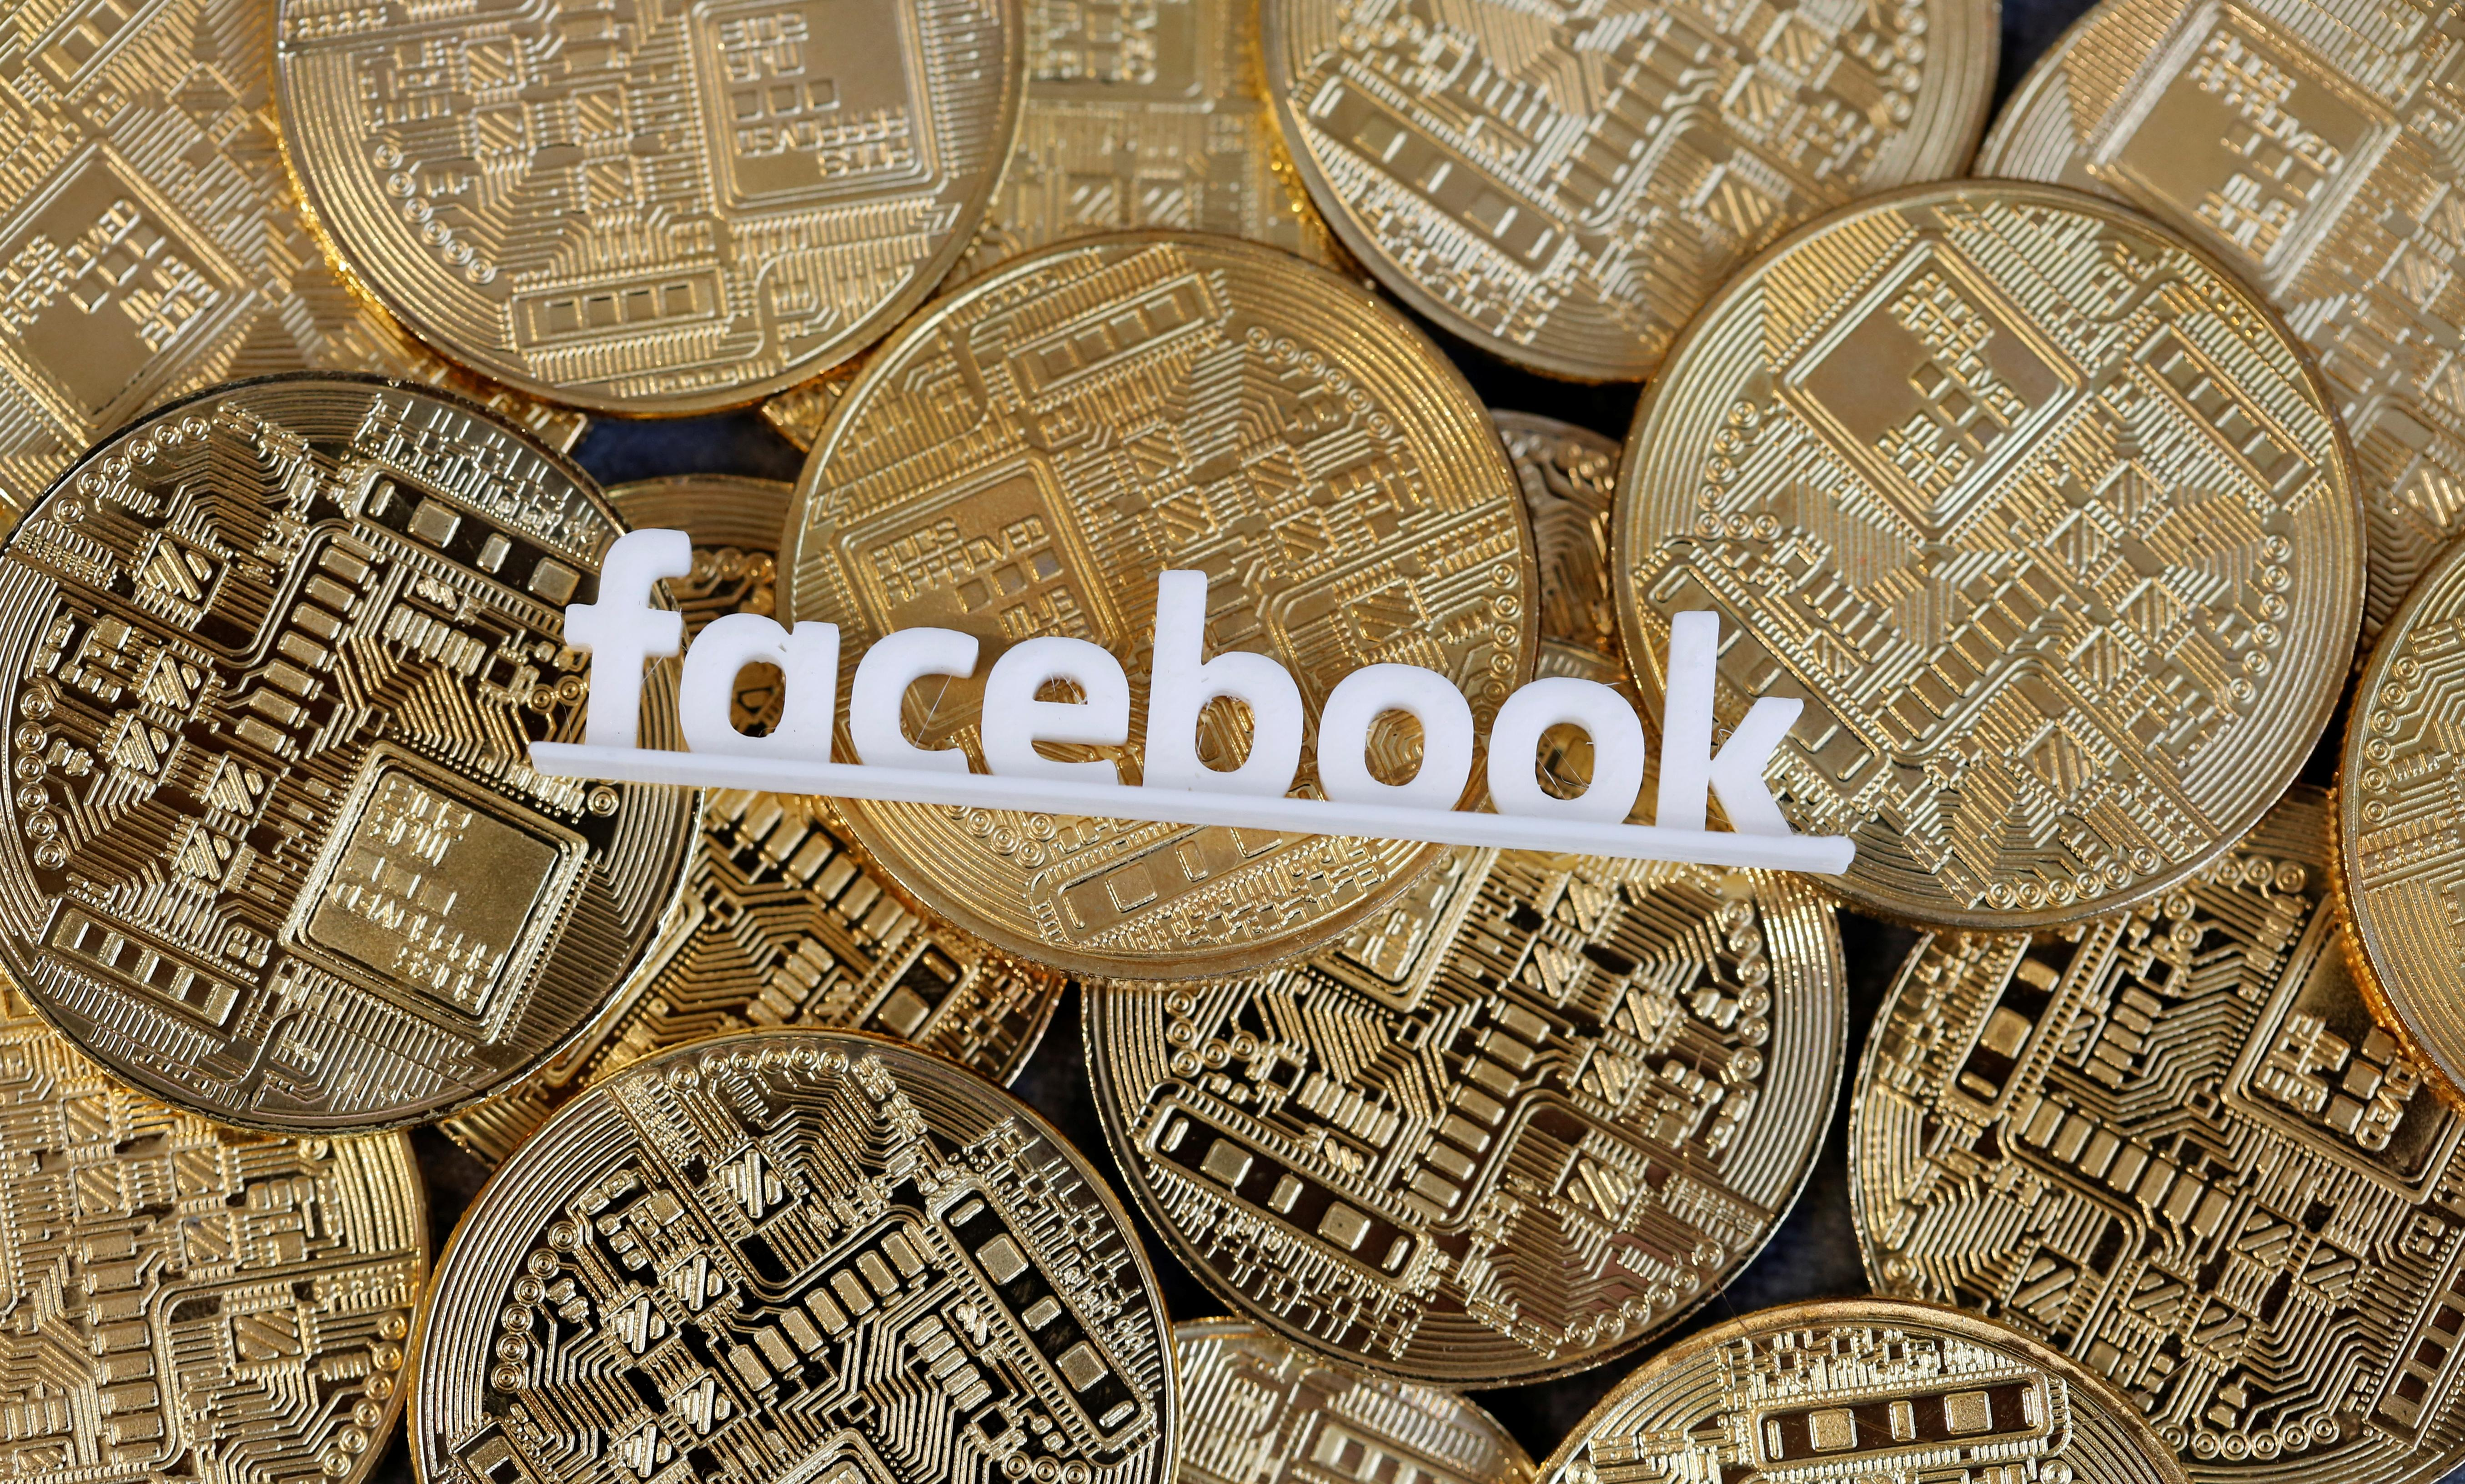 Facebook's cryptocurrency ambitions face privacy concerns, political backlash